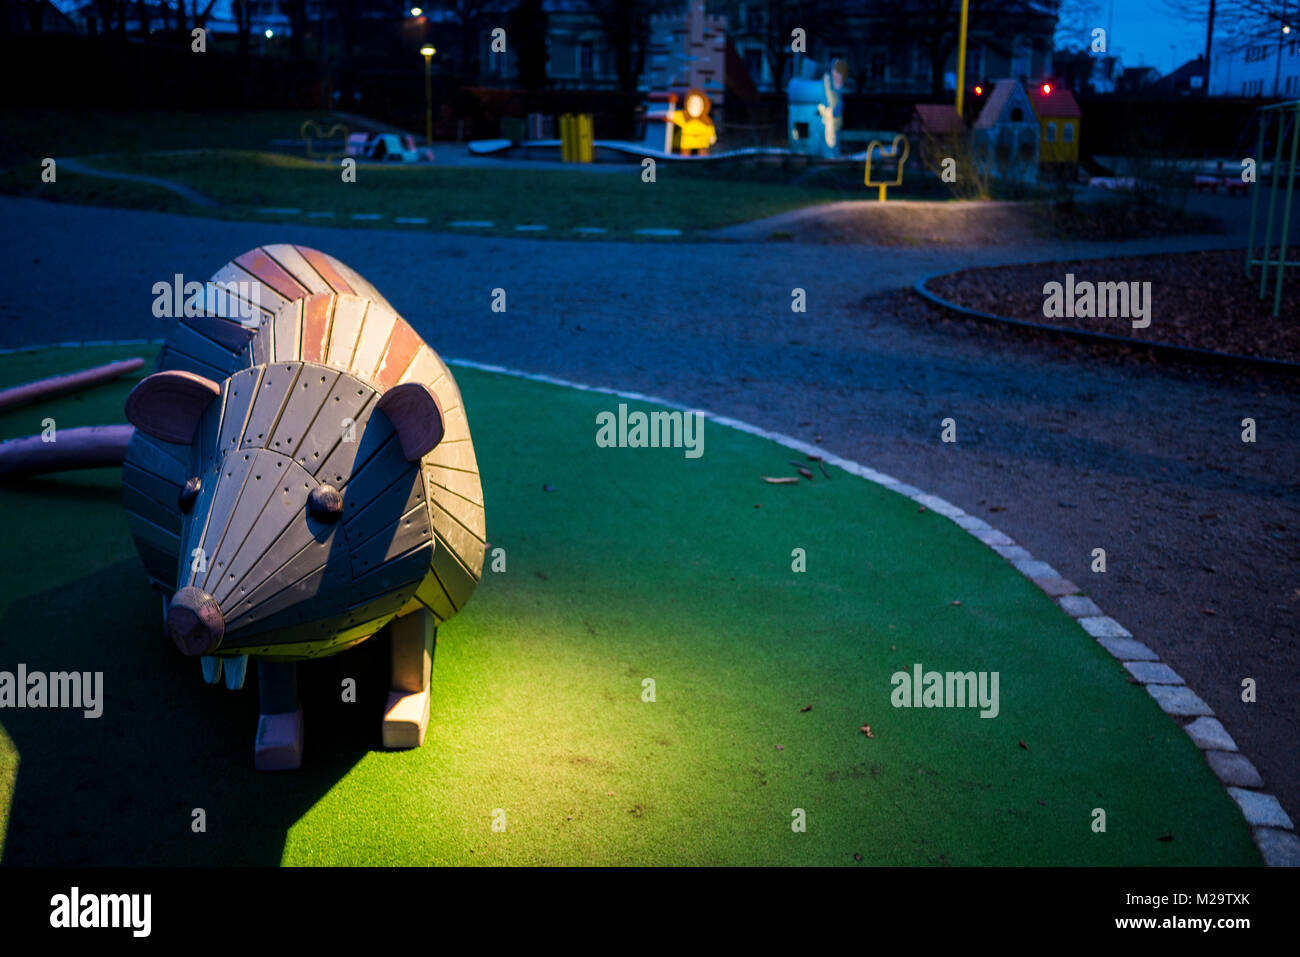 A jungle gym in form of a rat at a playground in the city - Stock Image